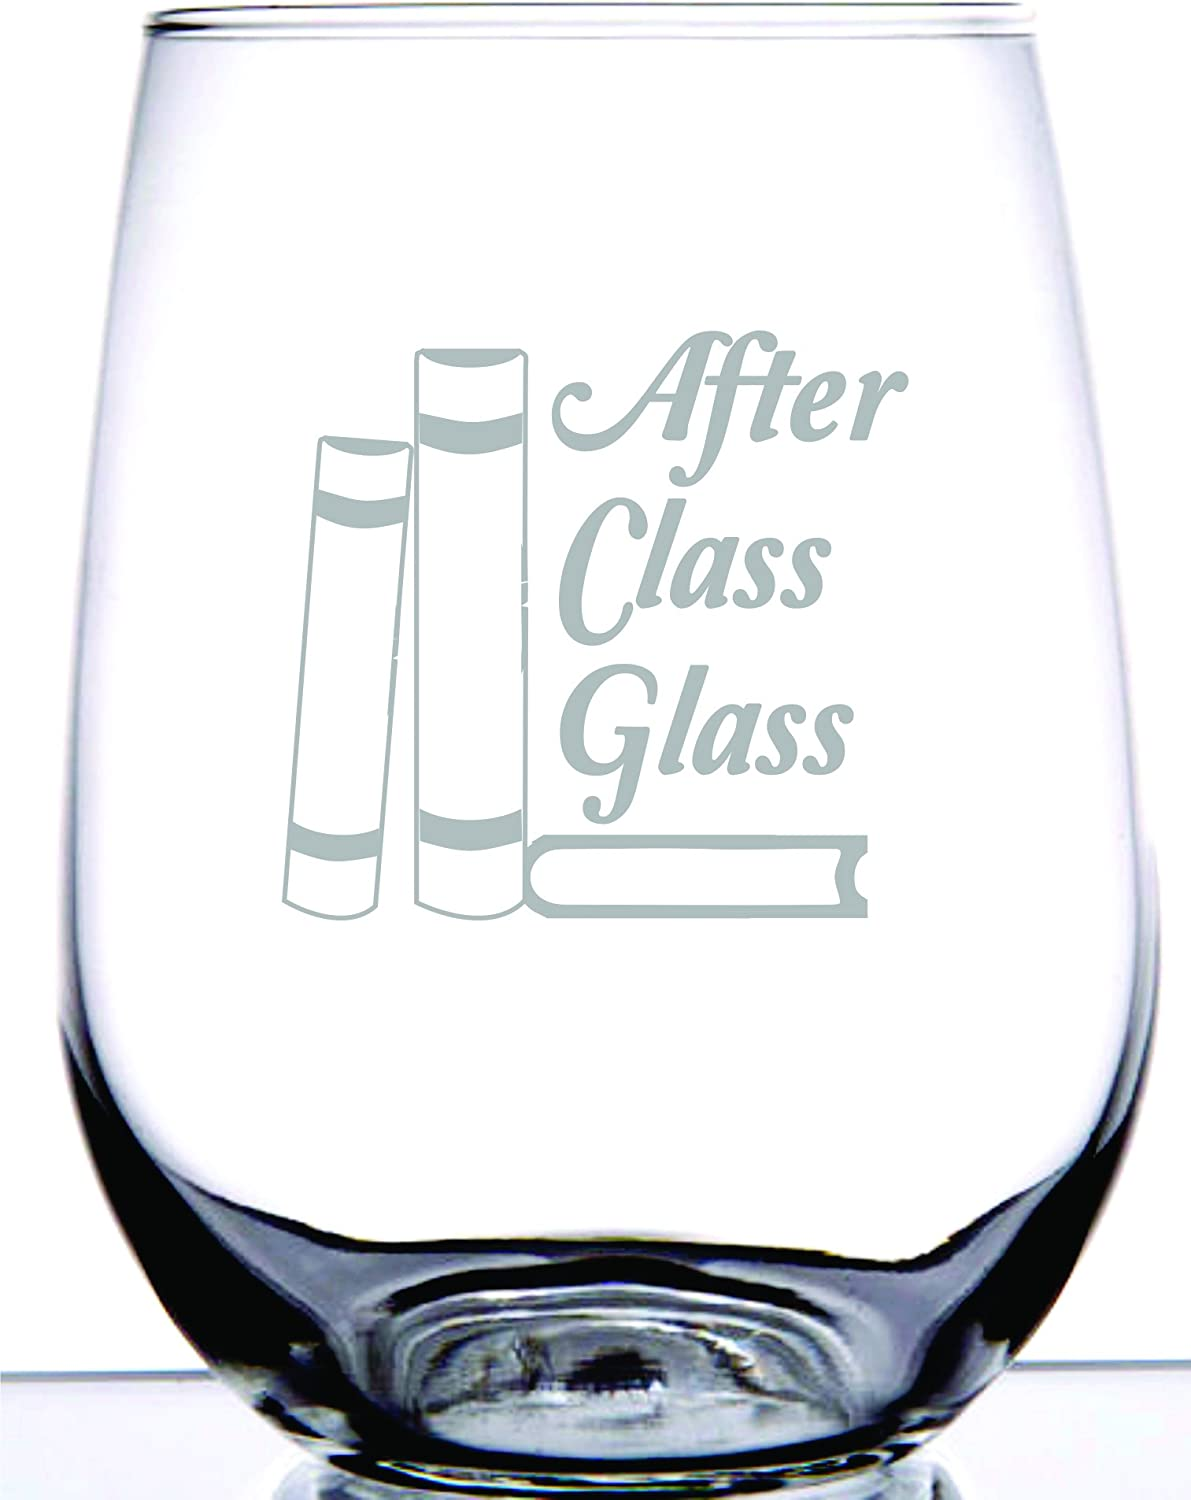 After Genuine Quantity limited Class Glass for Teacher Instructor Student or Professor